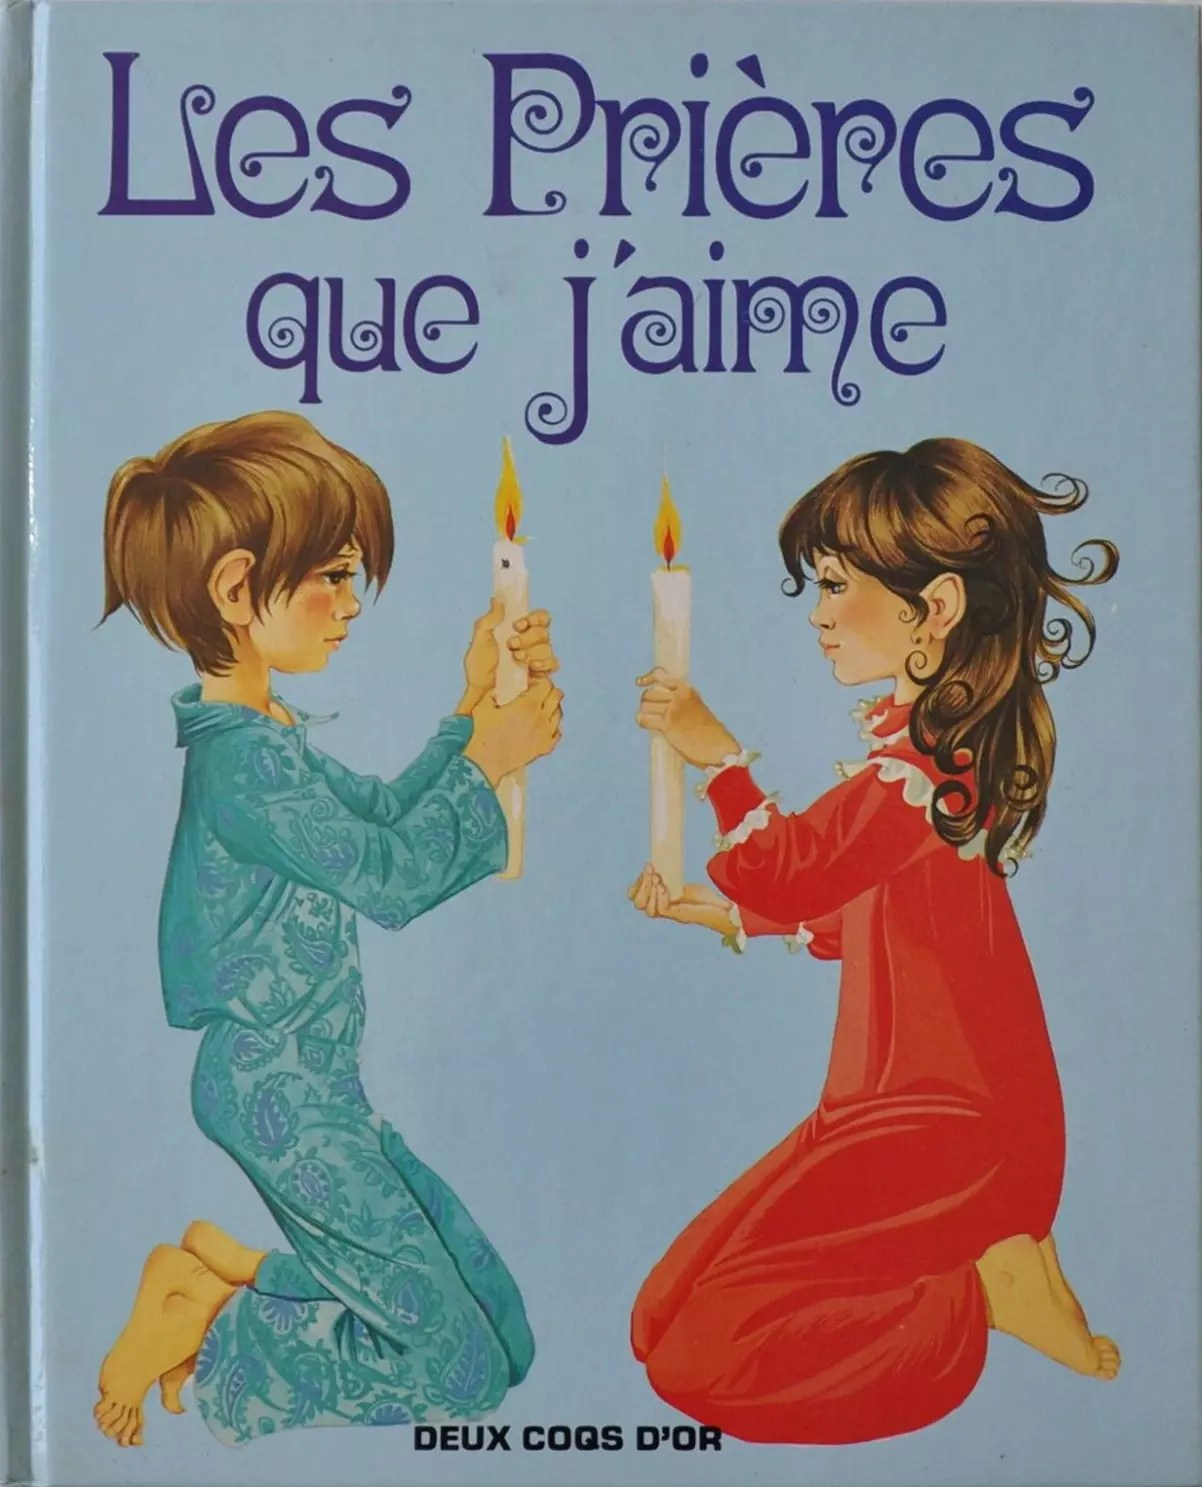 GJT French Les prieres que jaime gift book of prayers for children